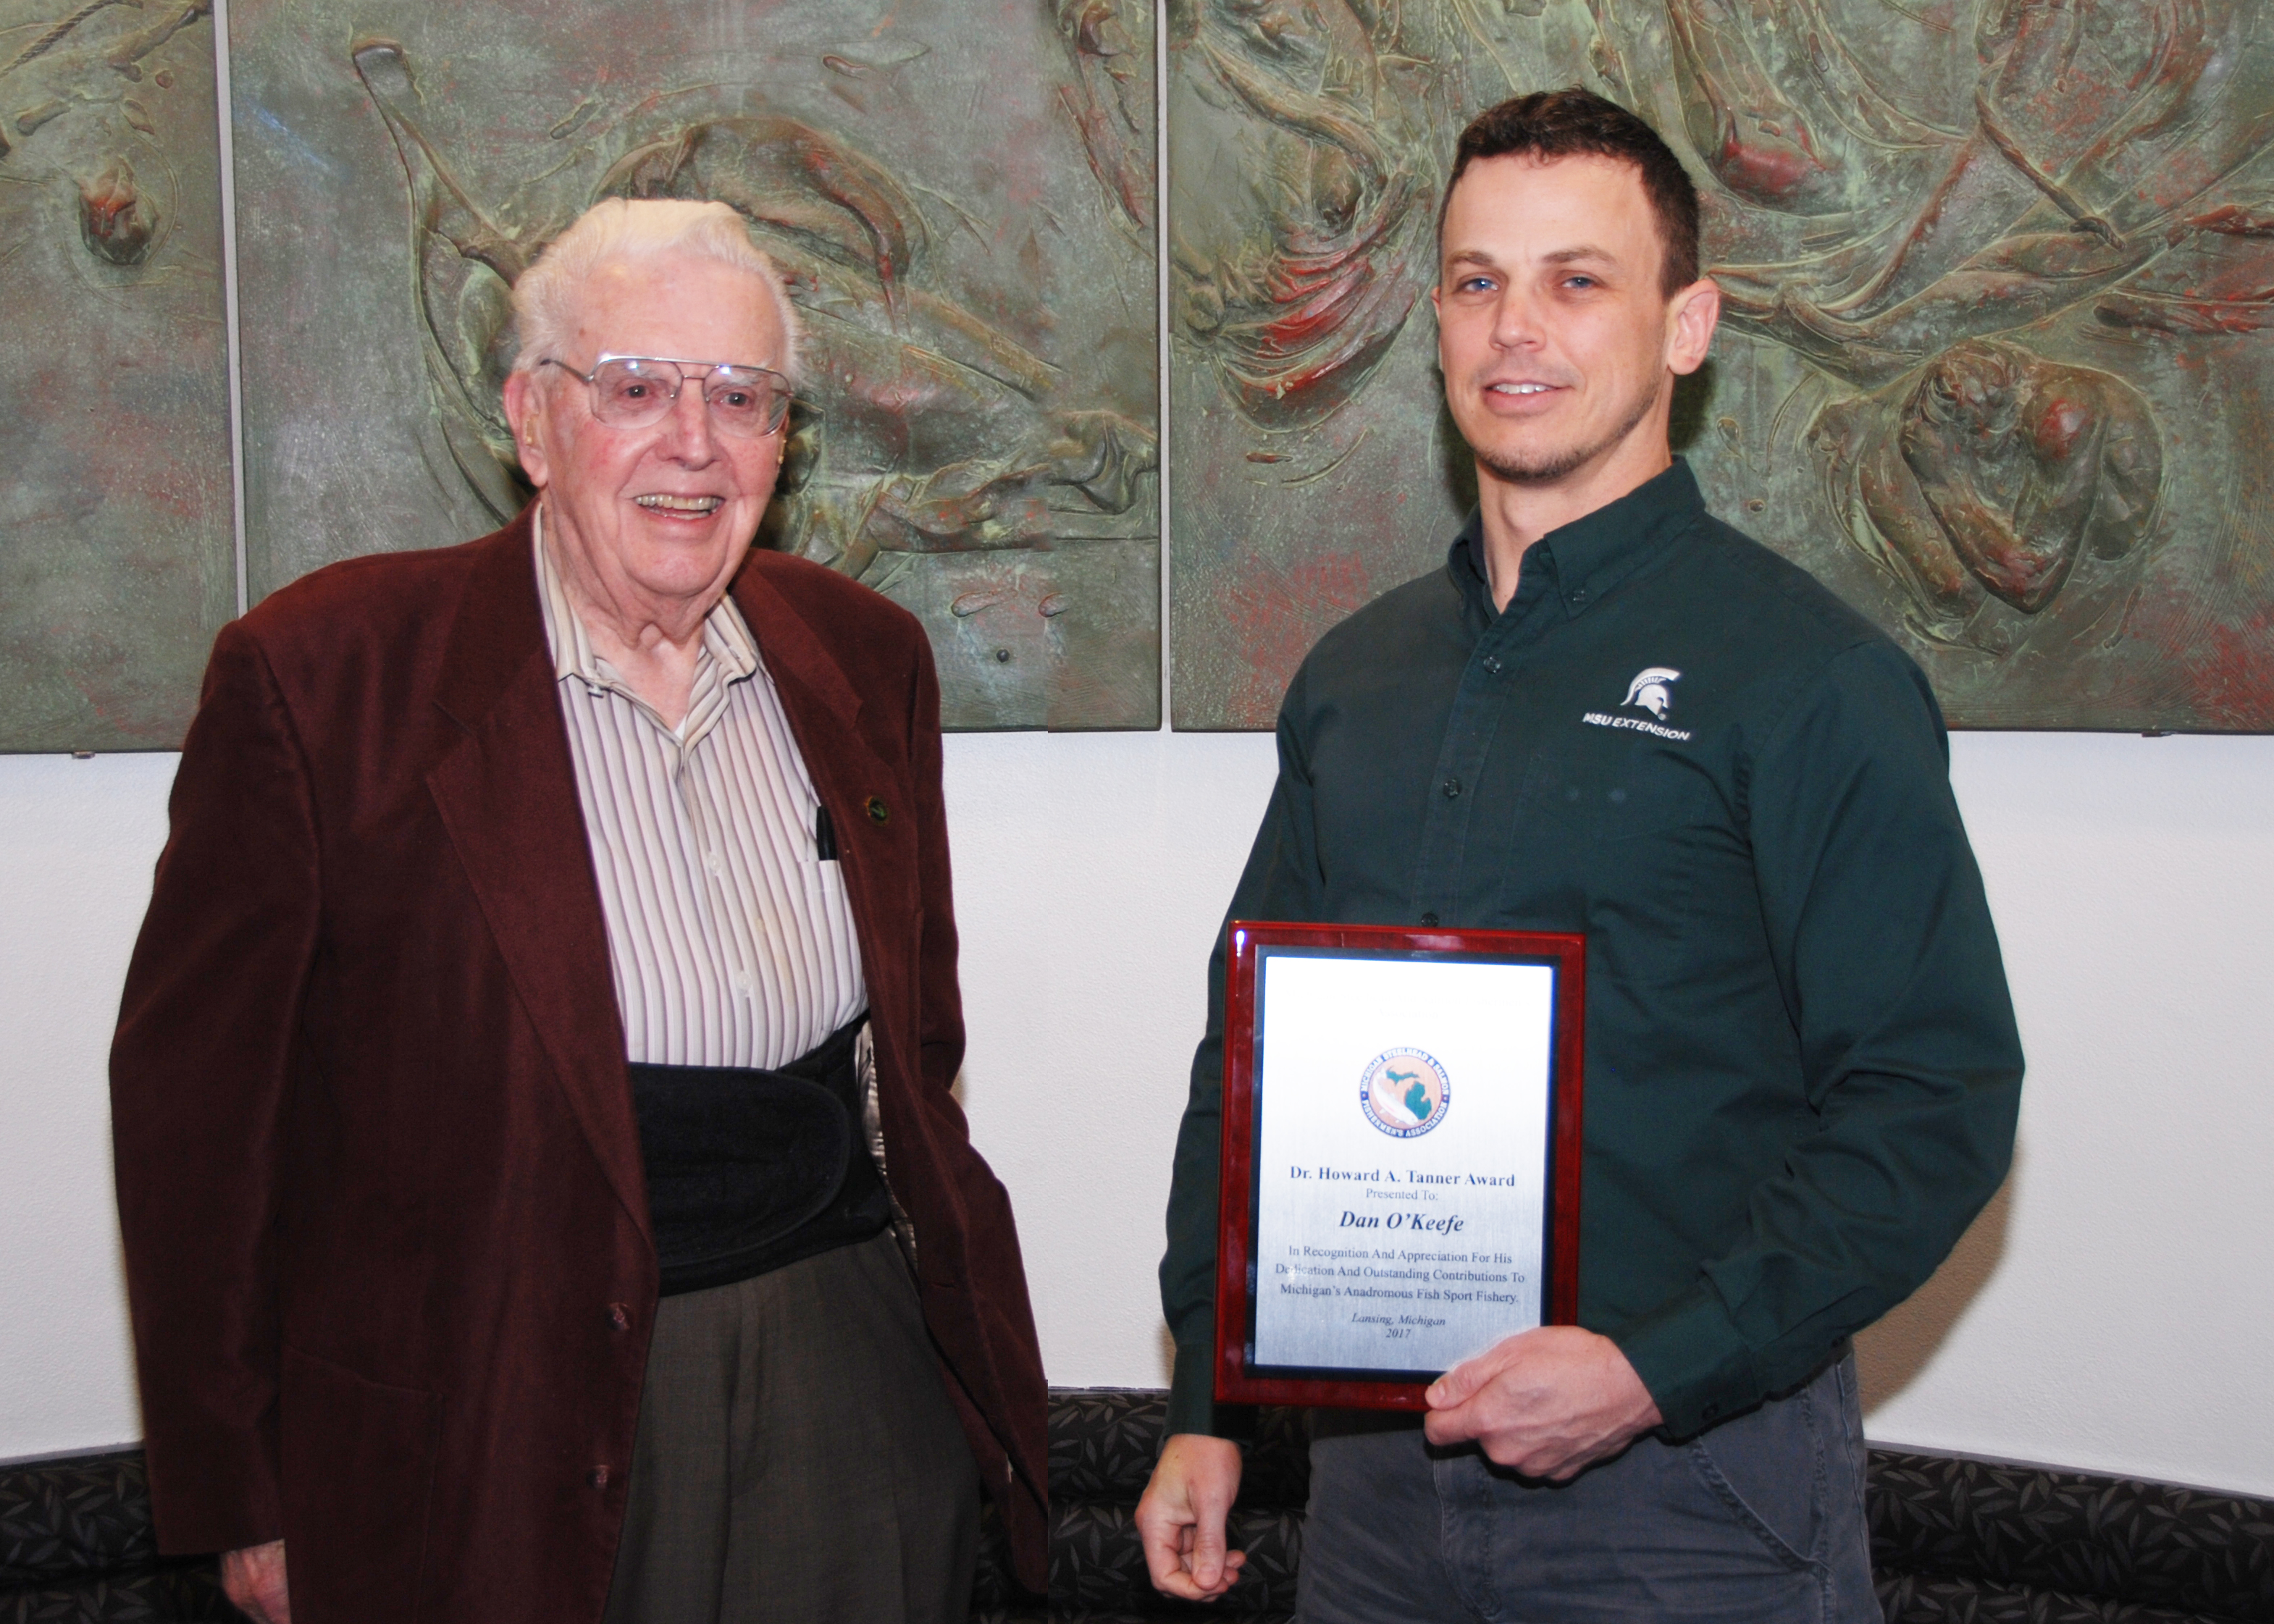 Michigan Sea Grant Extension educator Dr. Dan O'Keefe (right) recently received the Dr. Howard Tanner Award from the Michigan Steelheaders and Salmon Fishermen's Association. Dr. Tanner is shown at left.